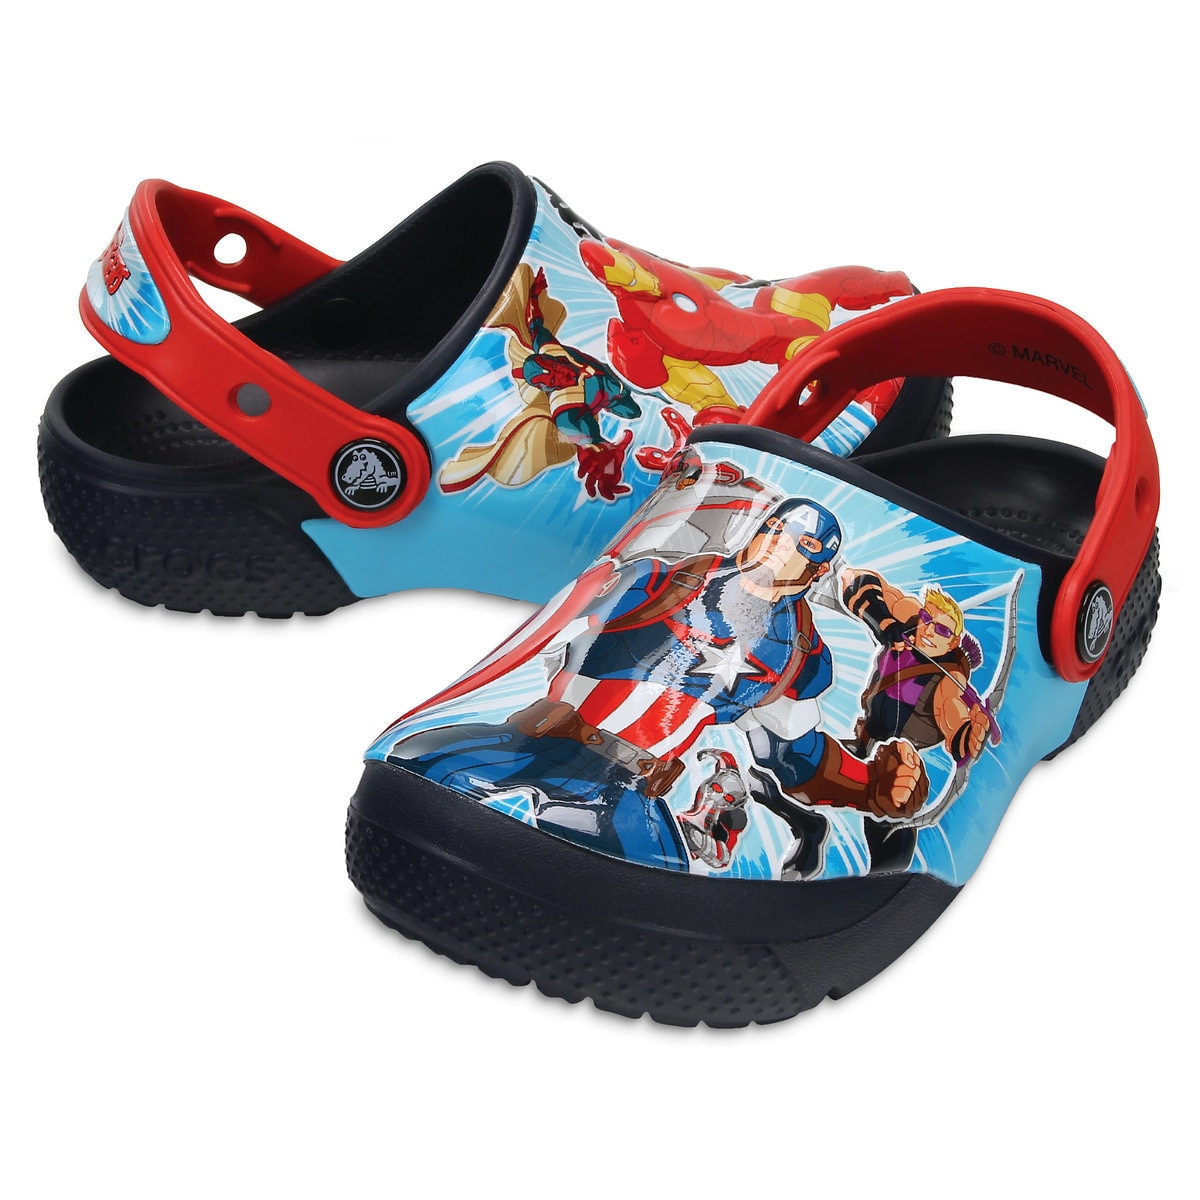 aaa0f94b0aed9 Product Image of The Avengers Crocs™ Clogs for Boys # 1